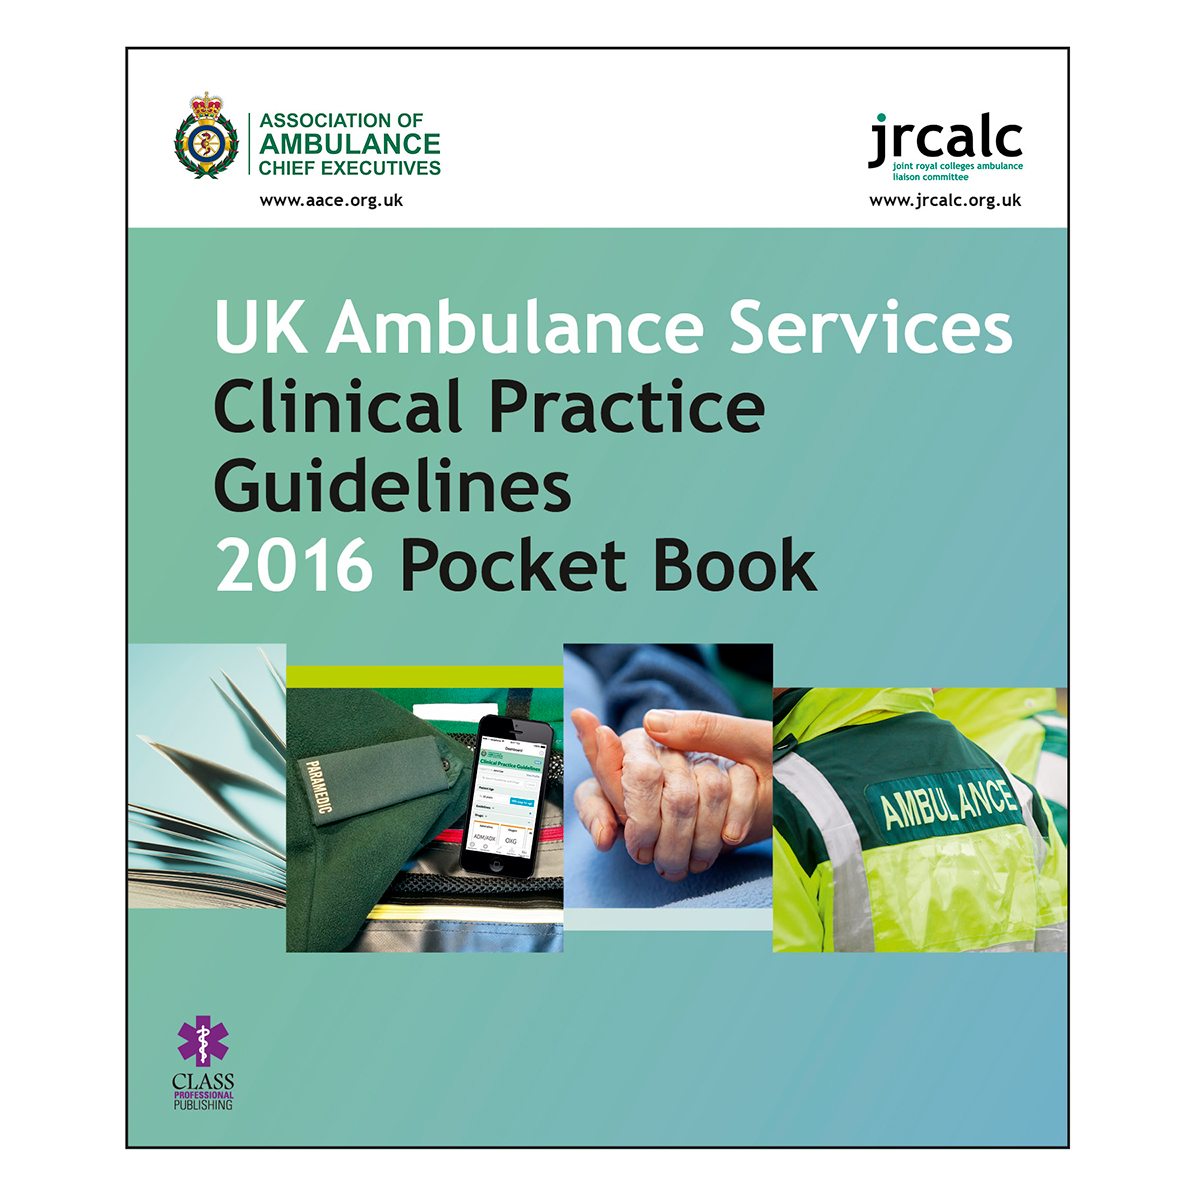 JRCALC Clinical Practice Guidelines, Pocket Book Edition